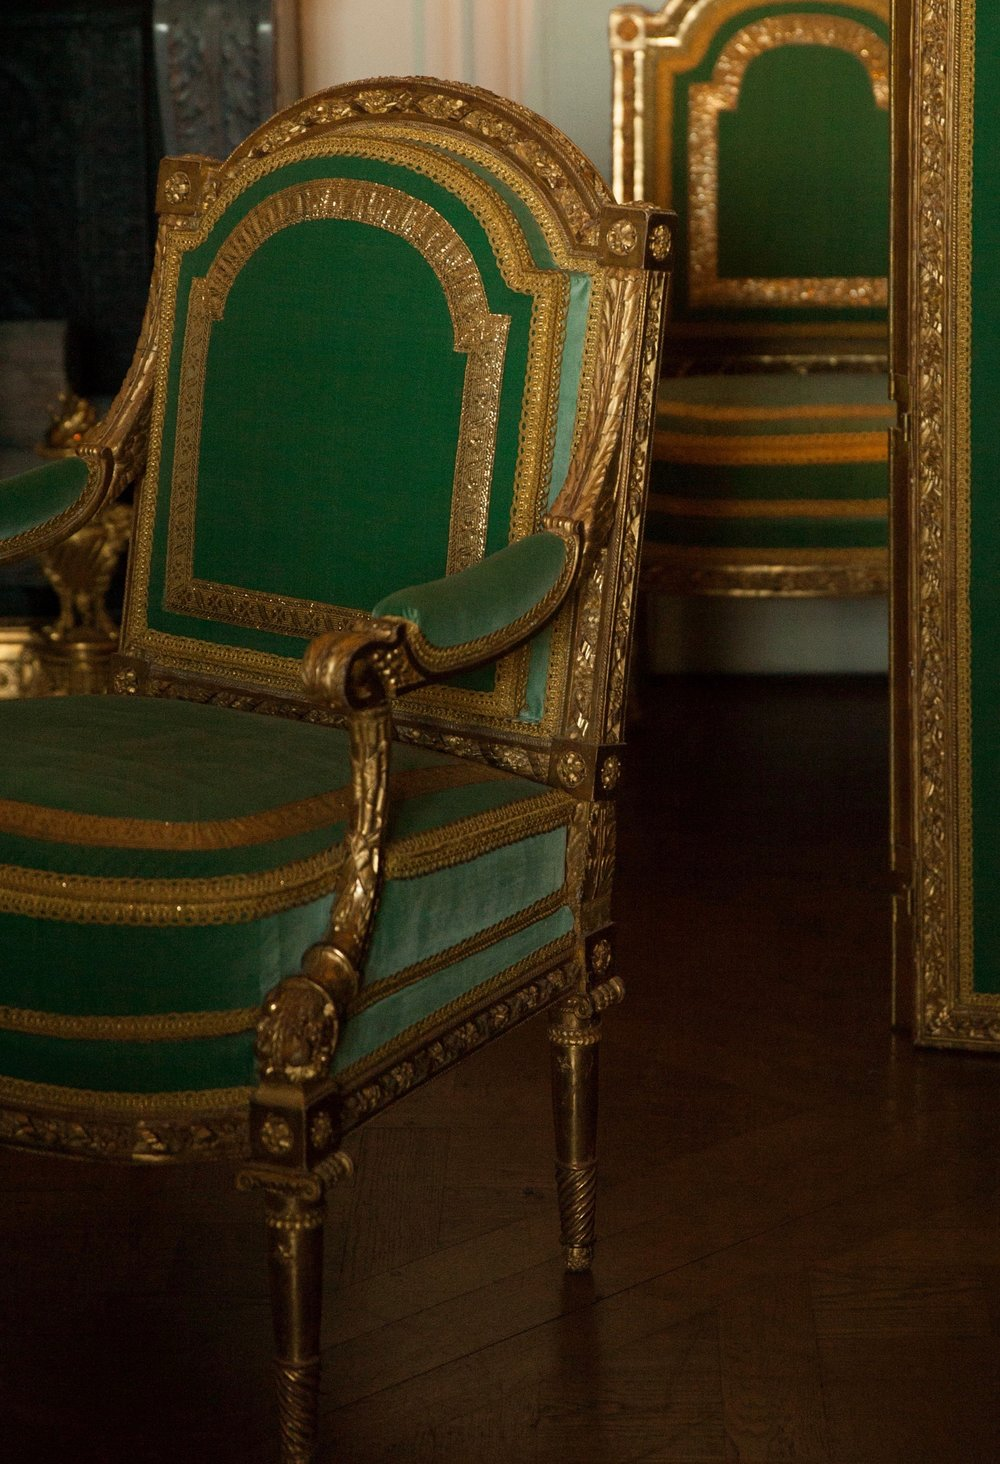 The chairs of Versailles